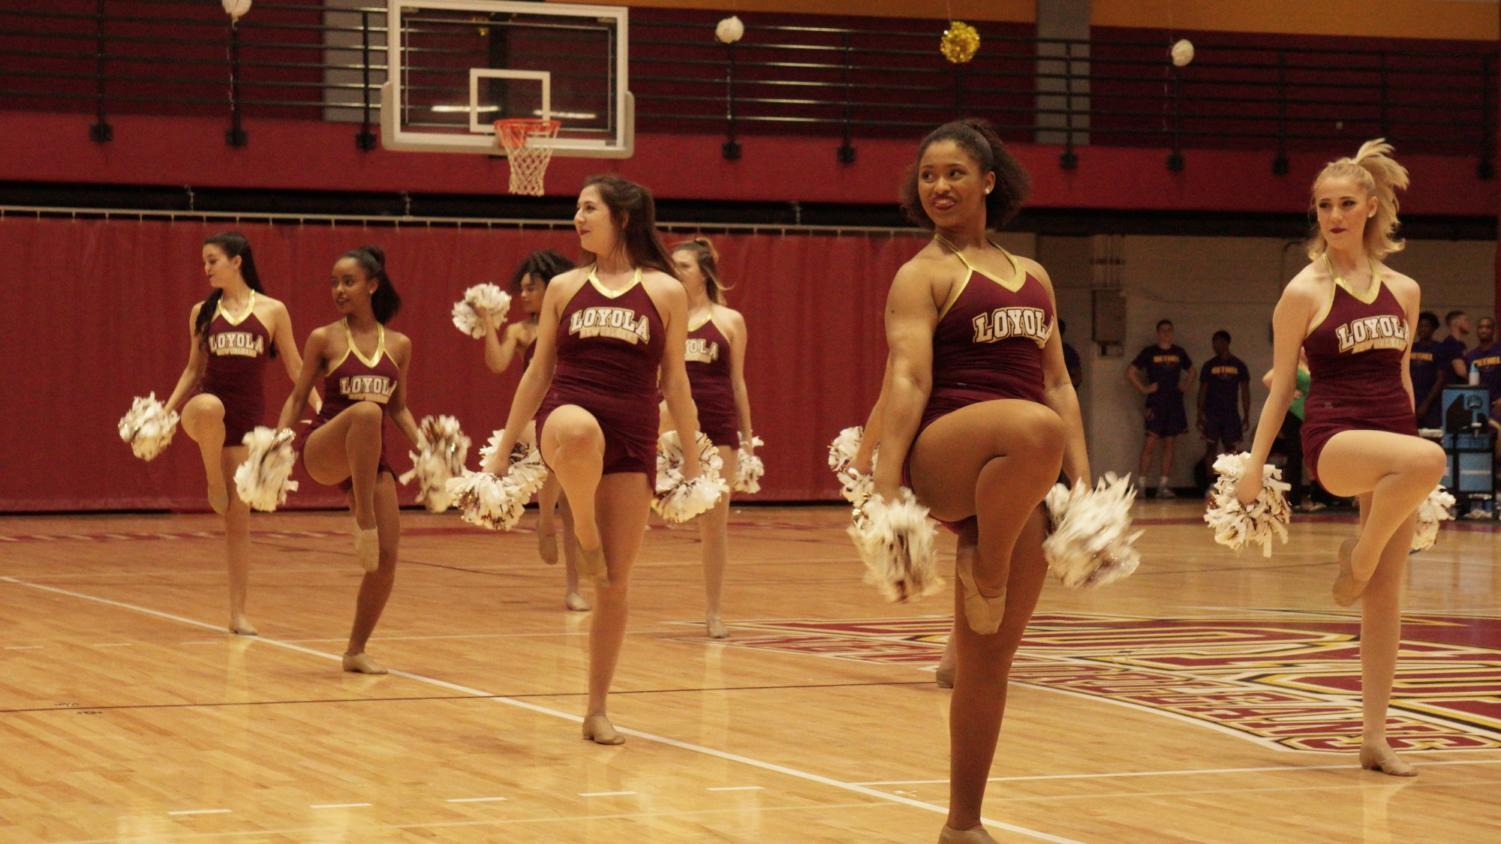 Loyola's competitive dance team performs during a timeout at a home game on Feb. 14, 2019. The dance team placed 12th at the national meet. Photo credit: Jacob Meyer